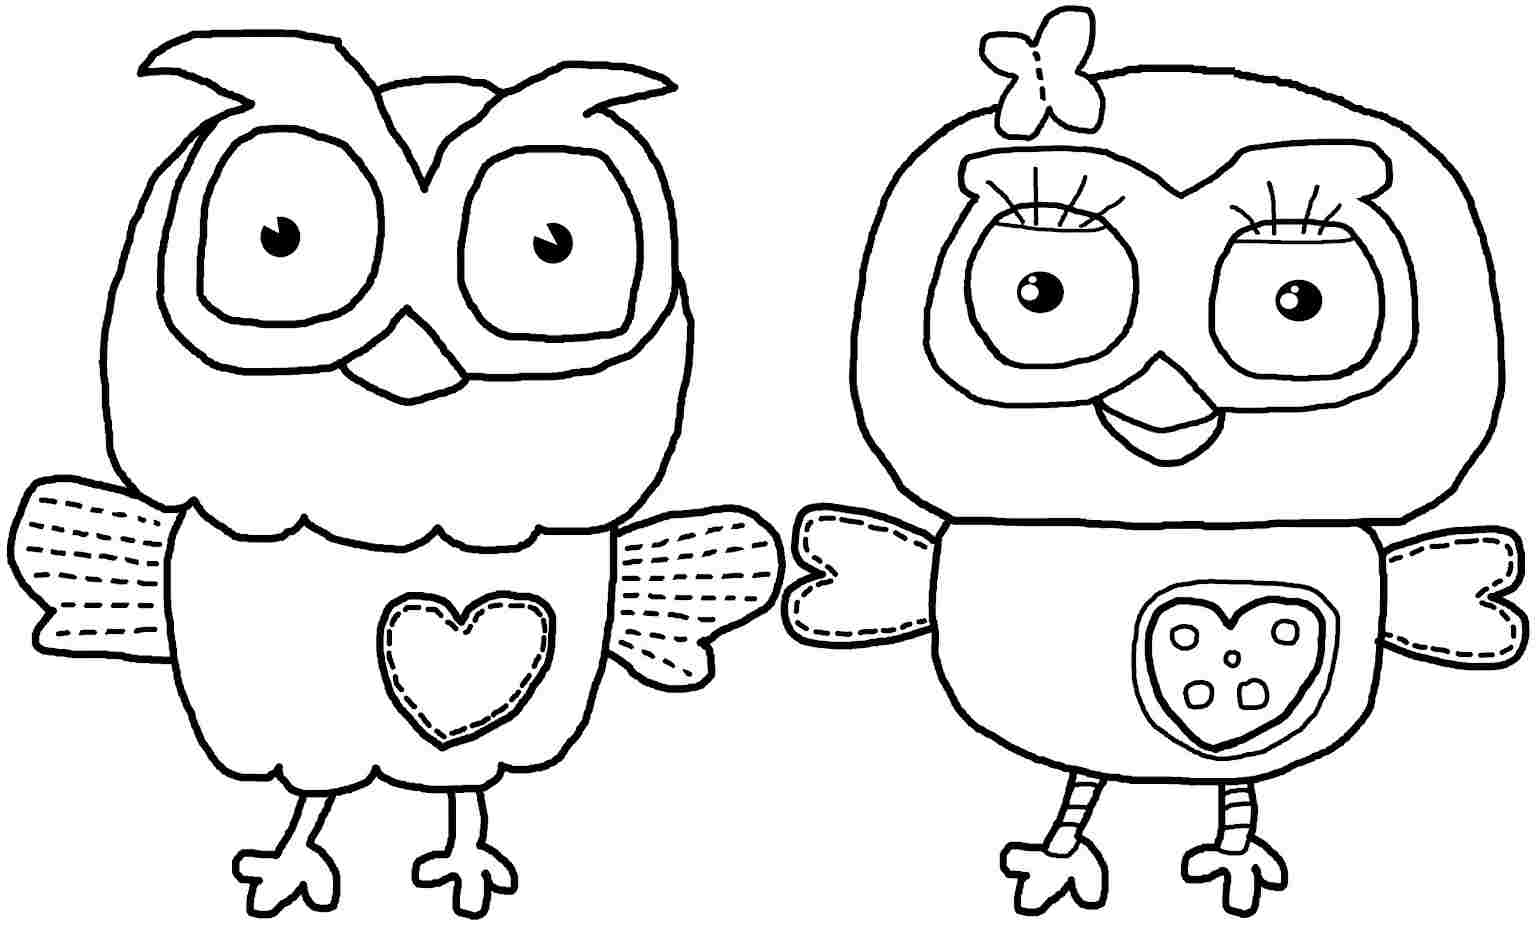 Image Free Printable Animal Coloring Pages 57 About Remodel Line